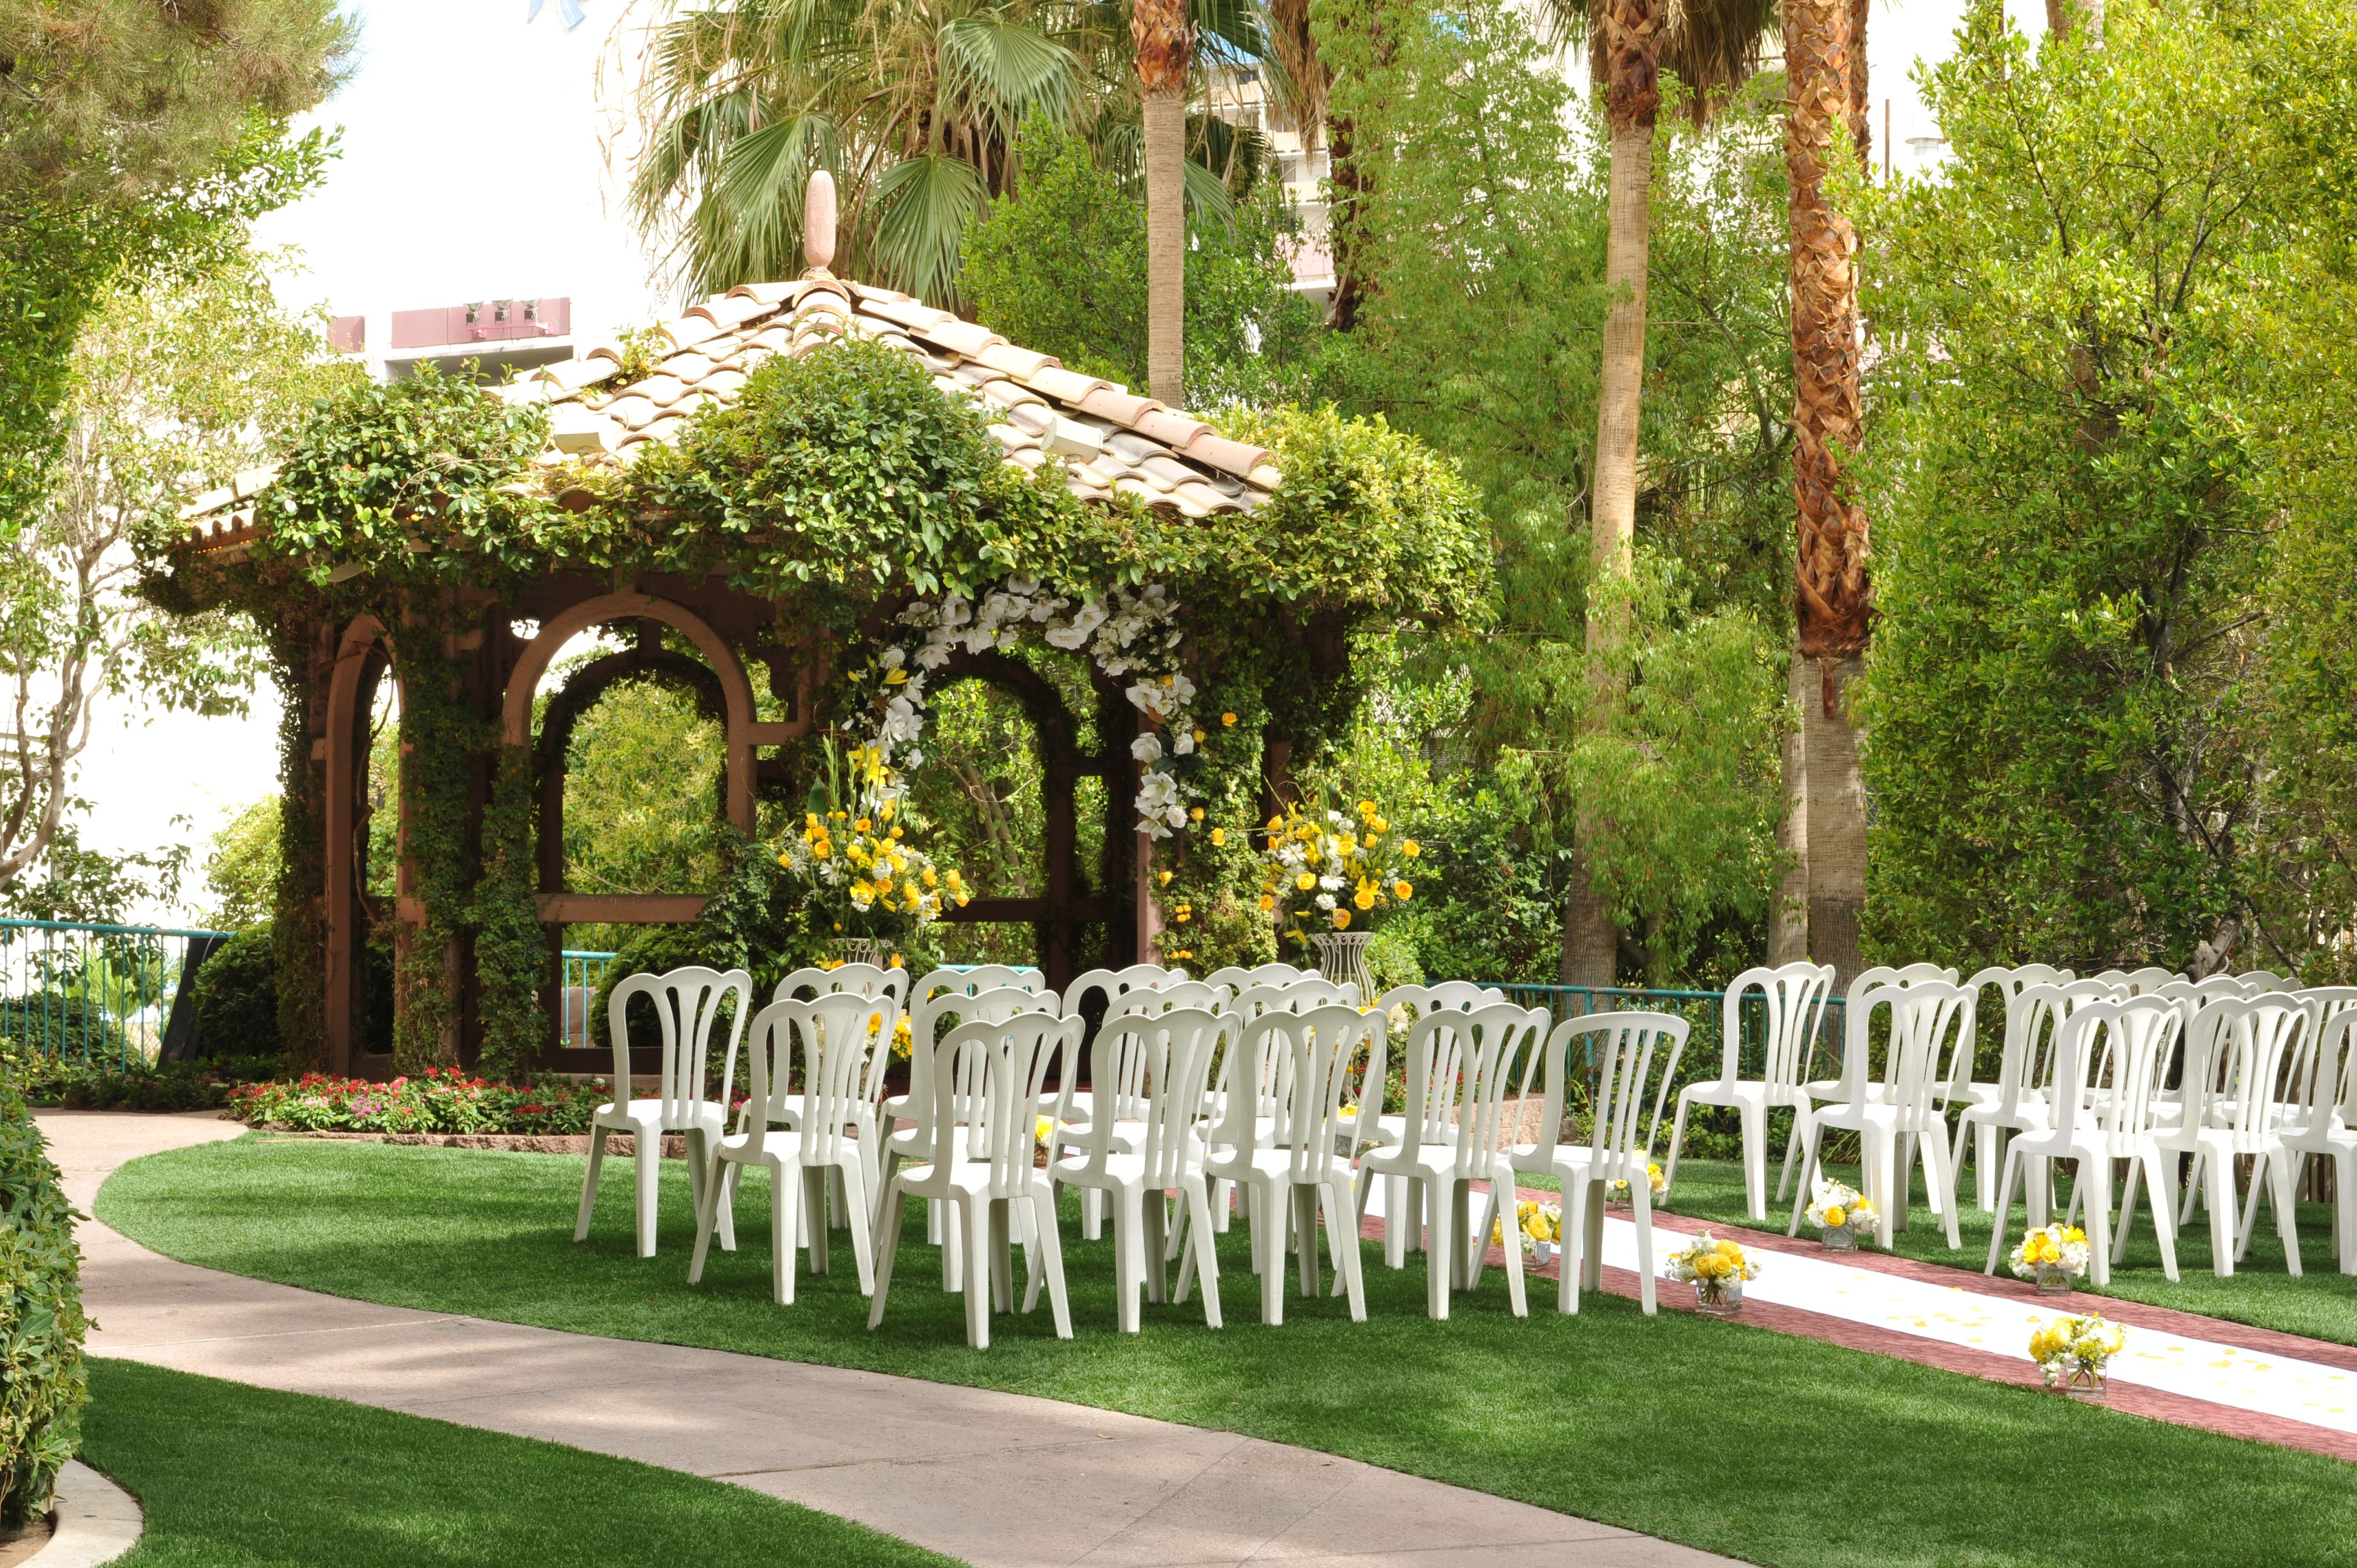 vegas wedding chapels The Gazebo Wedding Chapel at Flamingo Hotel Casino Las Vegas